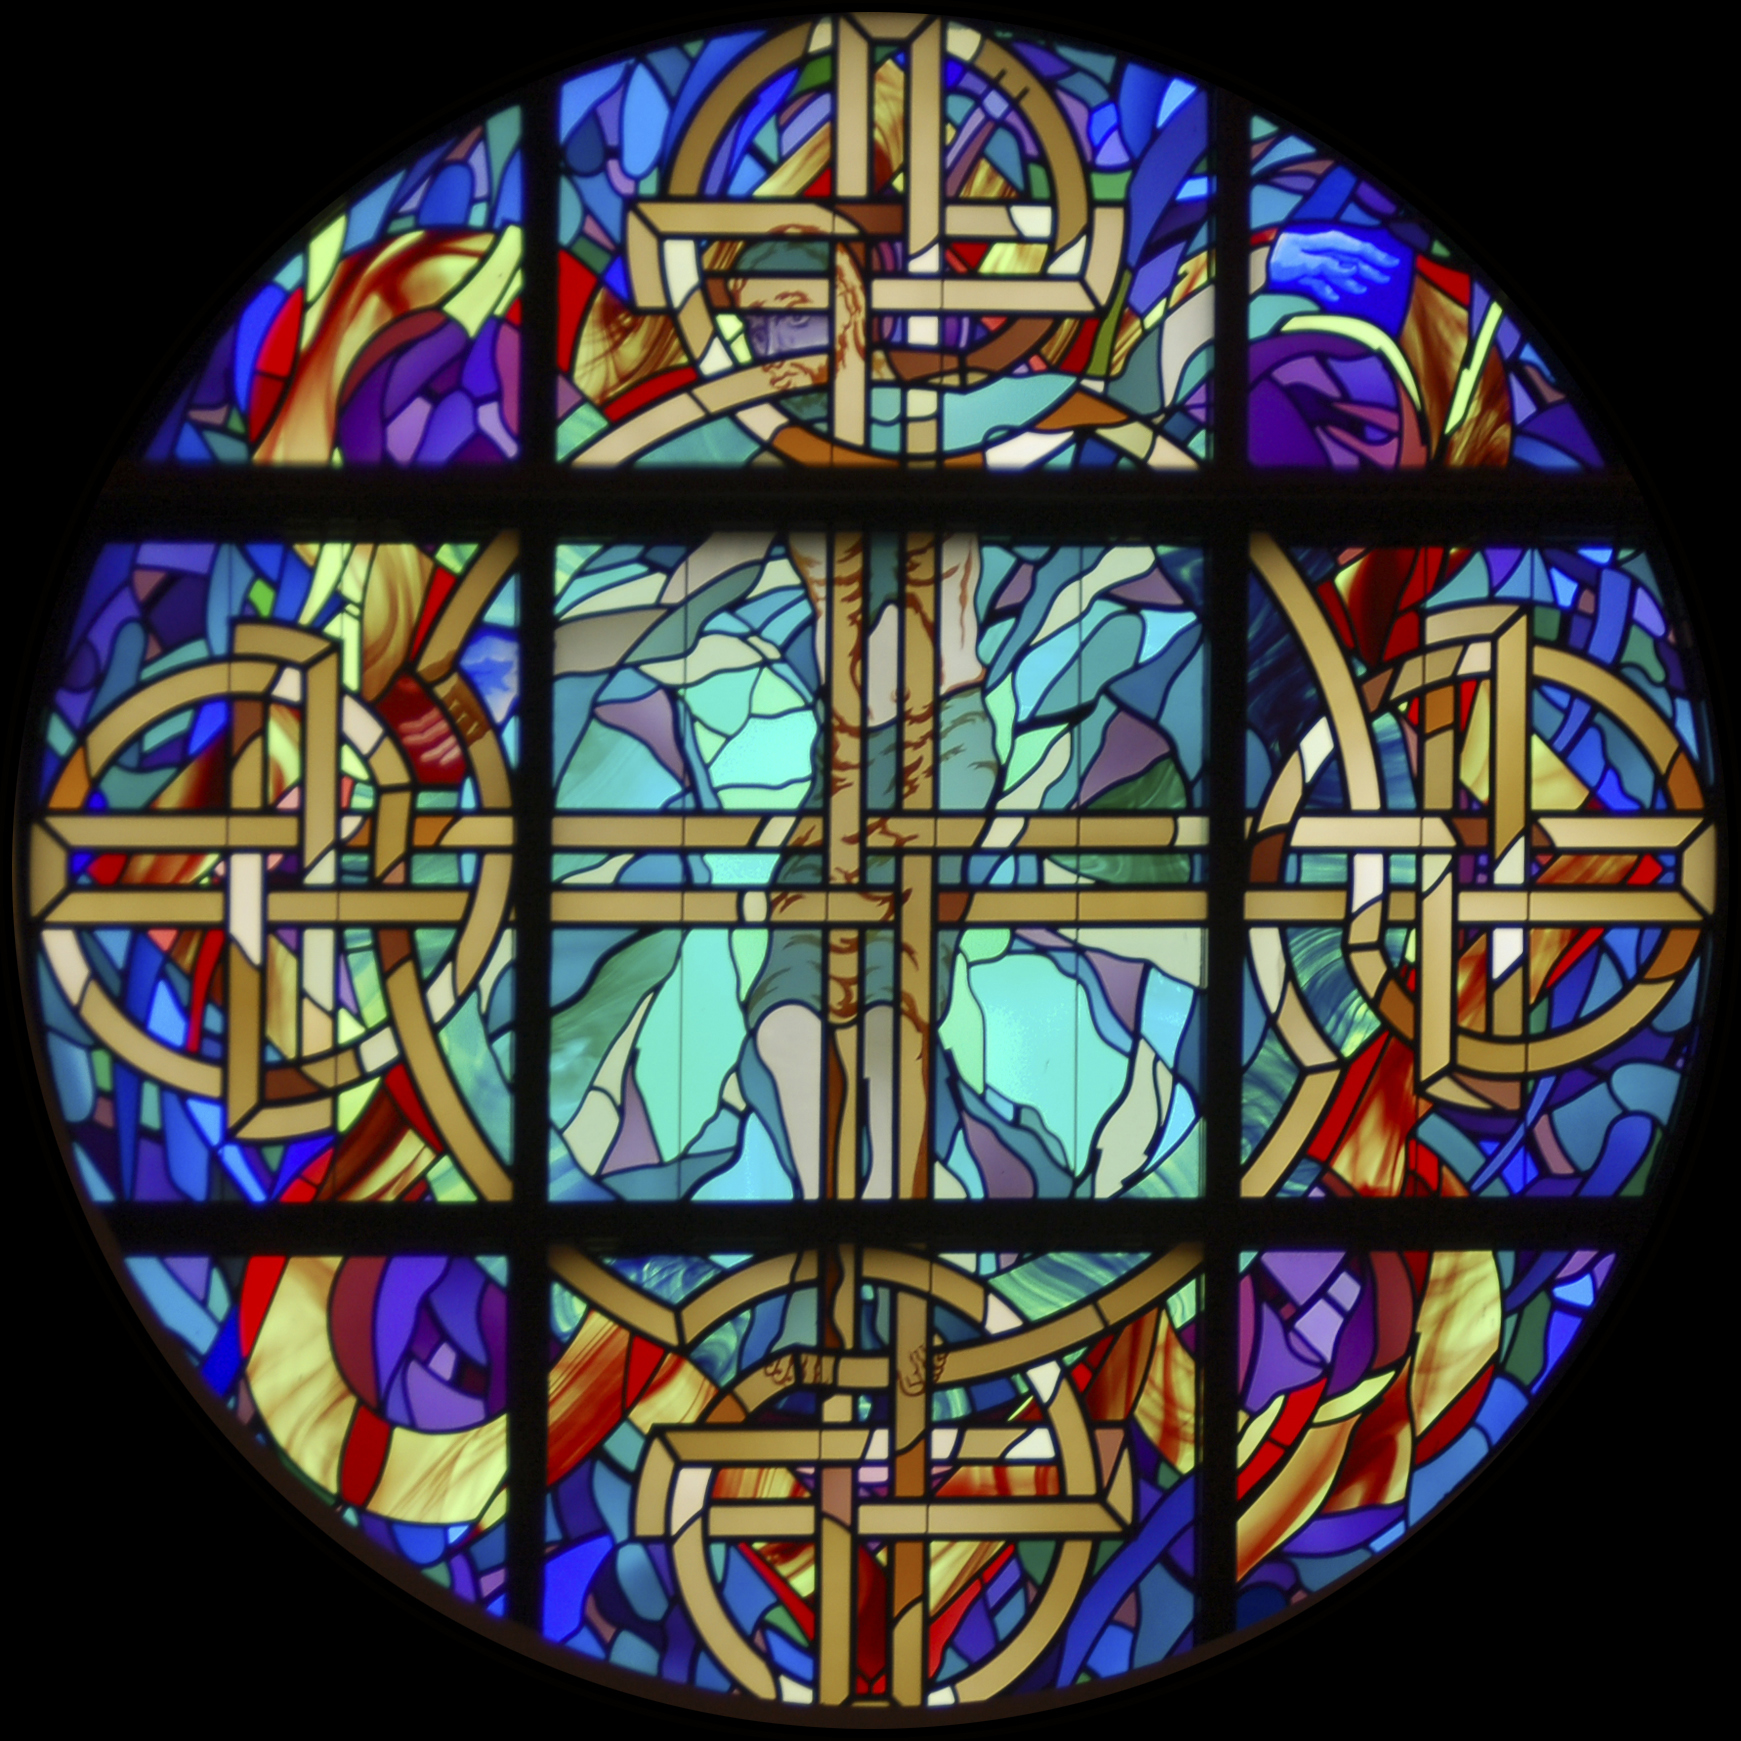 Stained Glass Windows : St columb s stained glass rose window featured andrew